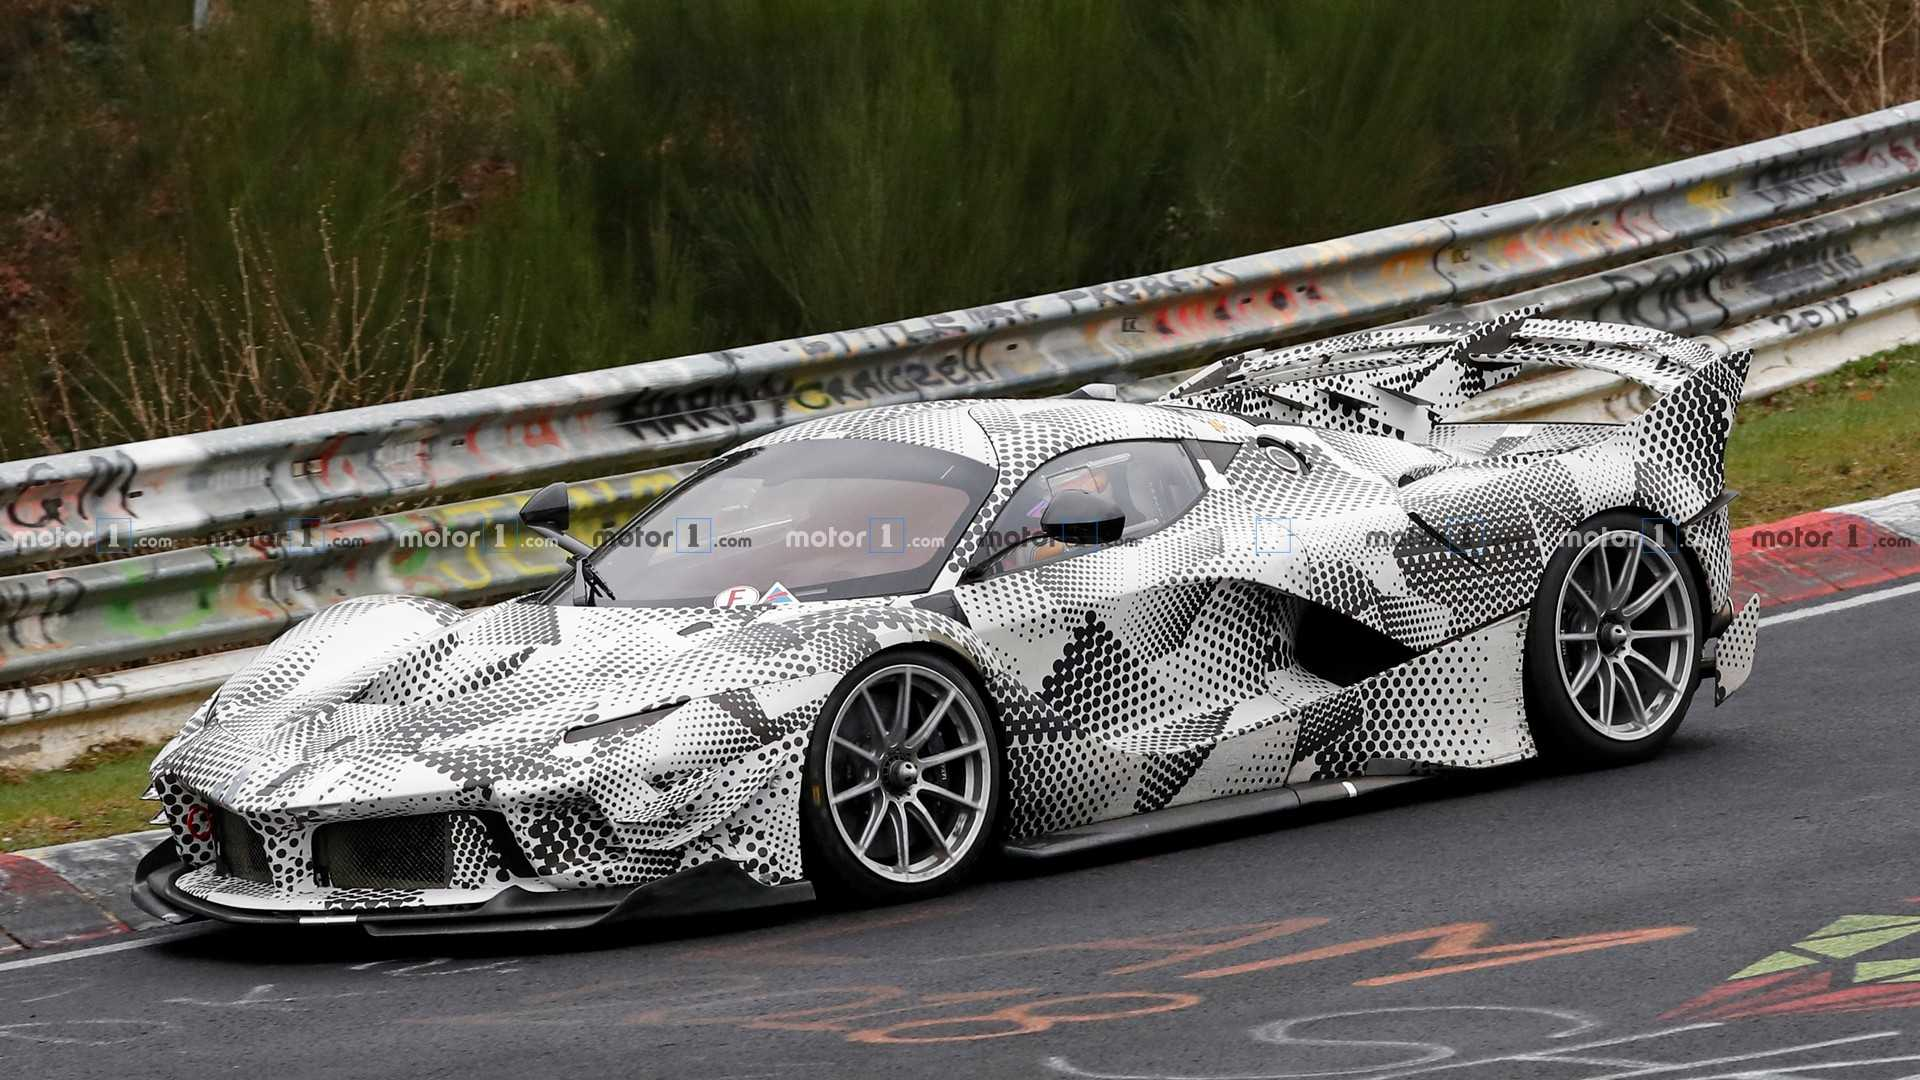 What Is Ferrari Testing With This FXX K Evo,Based Prototype?